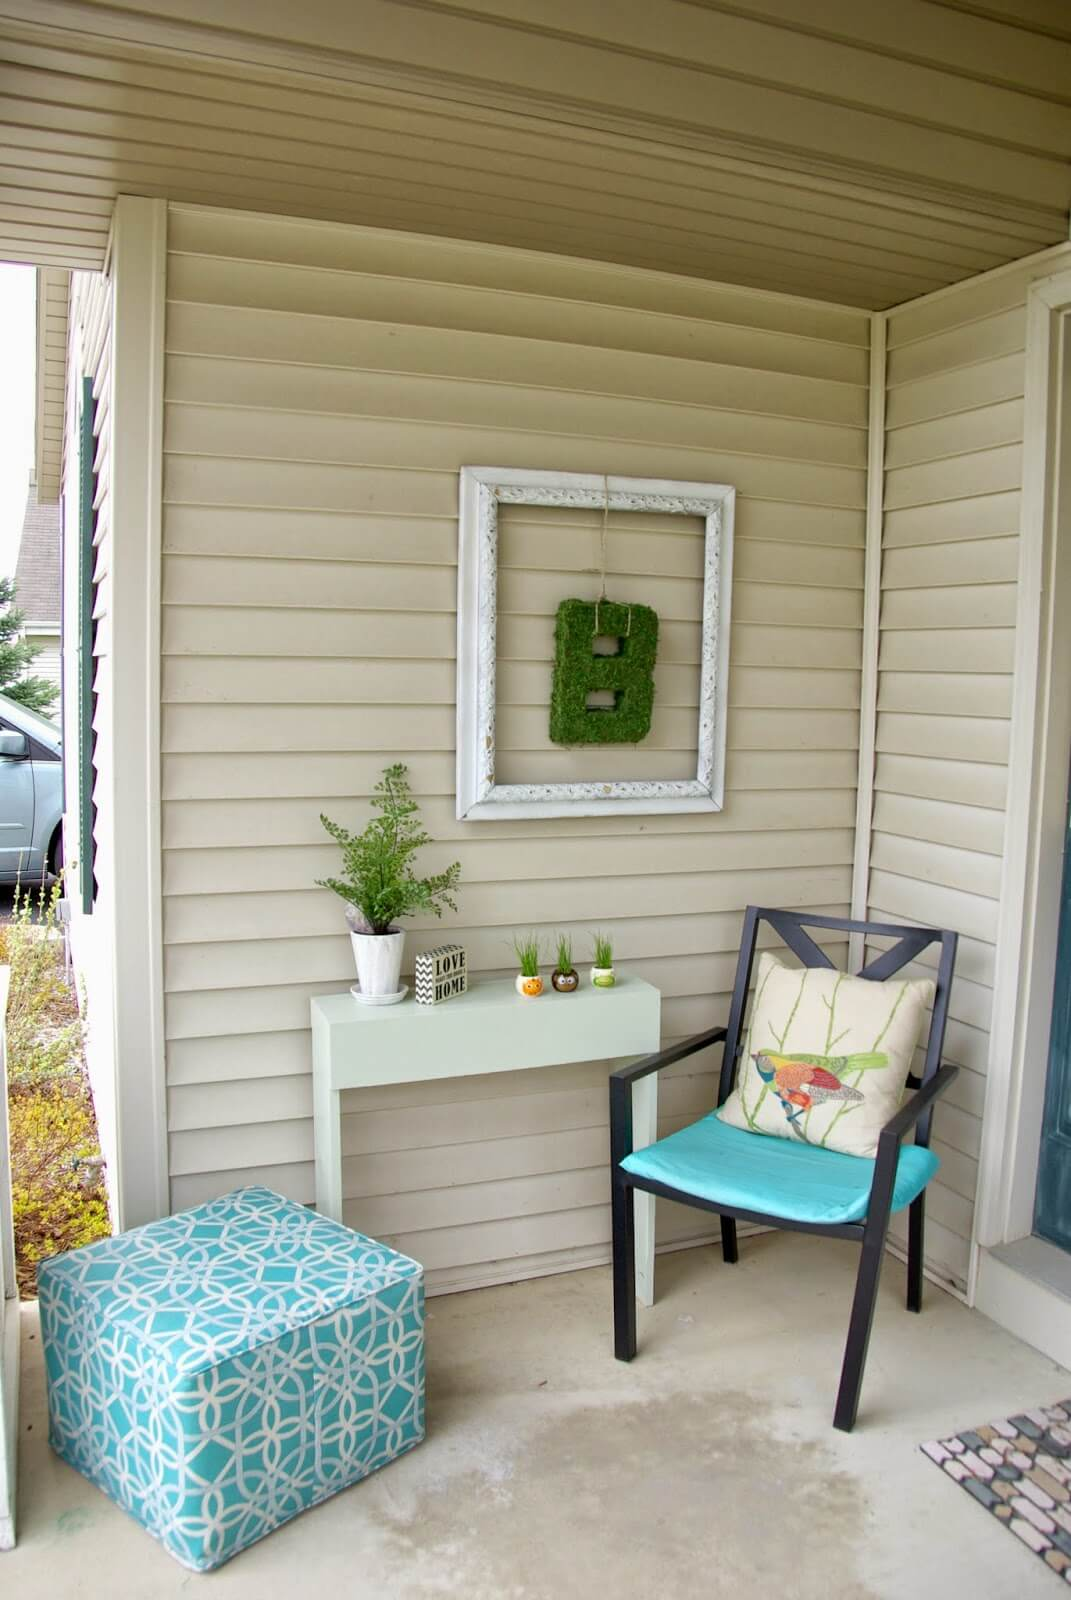 34 Best Porch Wall Decor Ideas and Designs for 2020 on Patio Decor Ideas id=78783